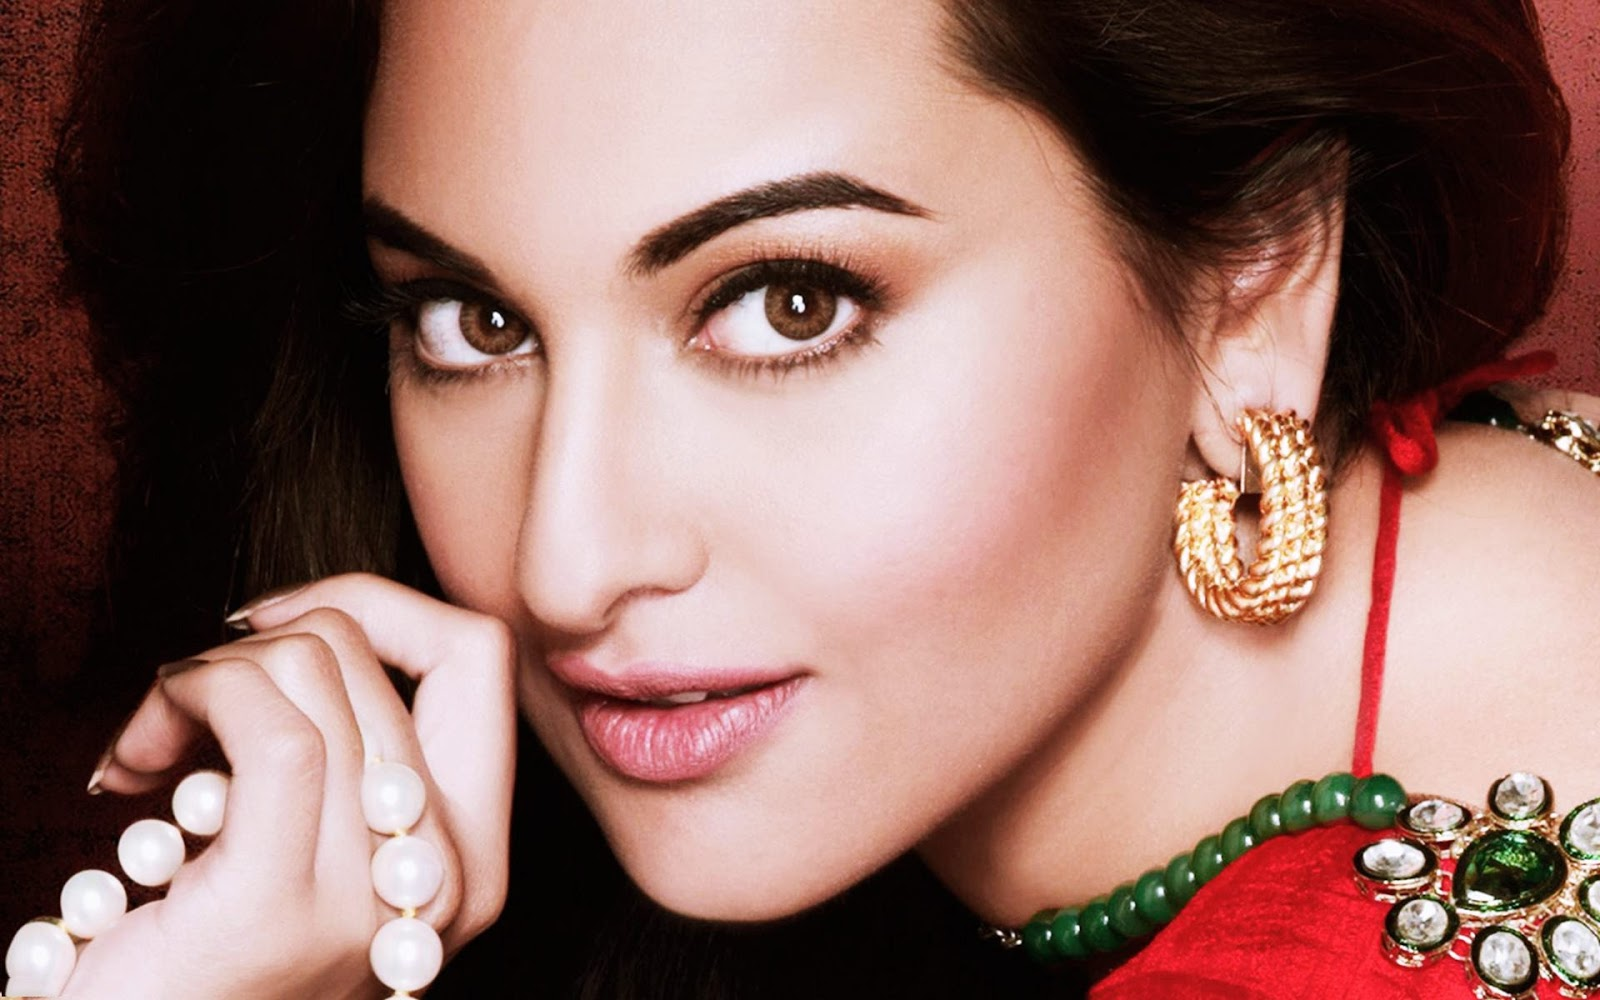 Bollywood actress Sonakshi Sinha who lost over 30kgs for her debut film Dabangg opposite actor Salman Khan is set to shedding few more pounds First I had to lose